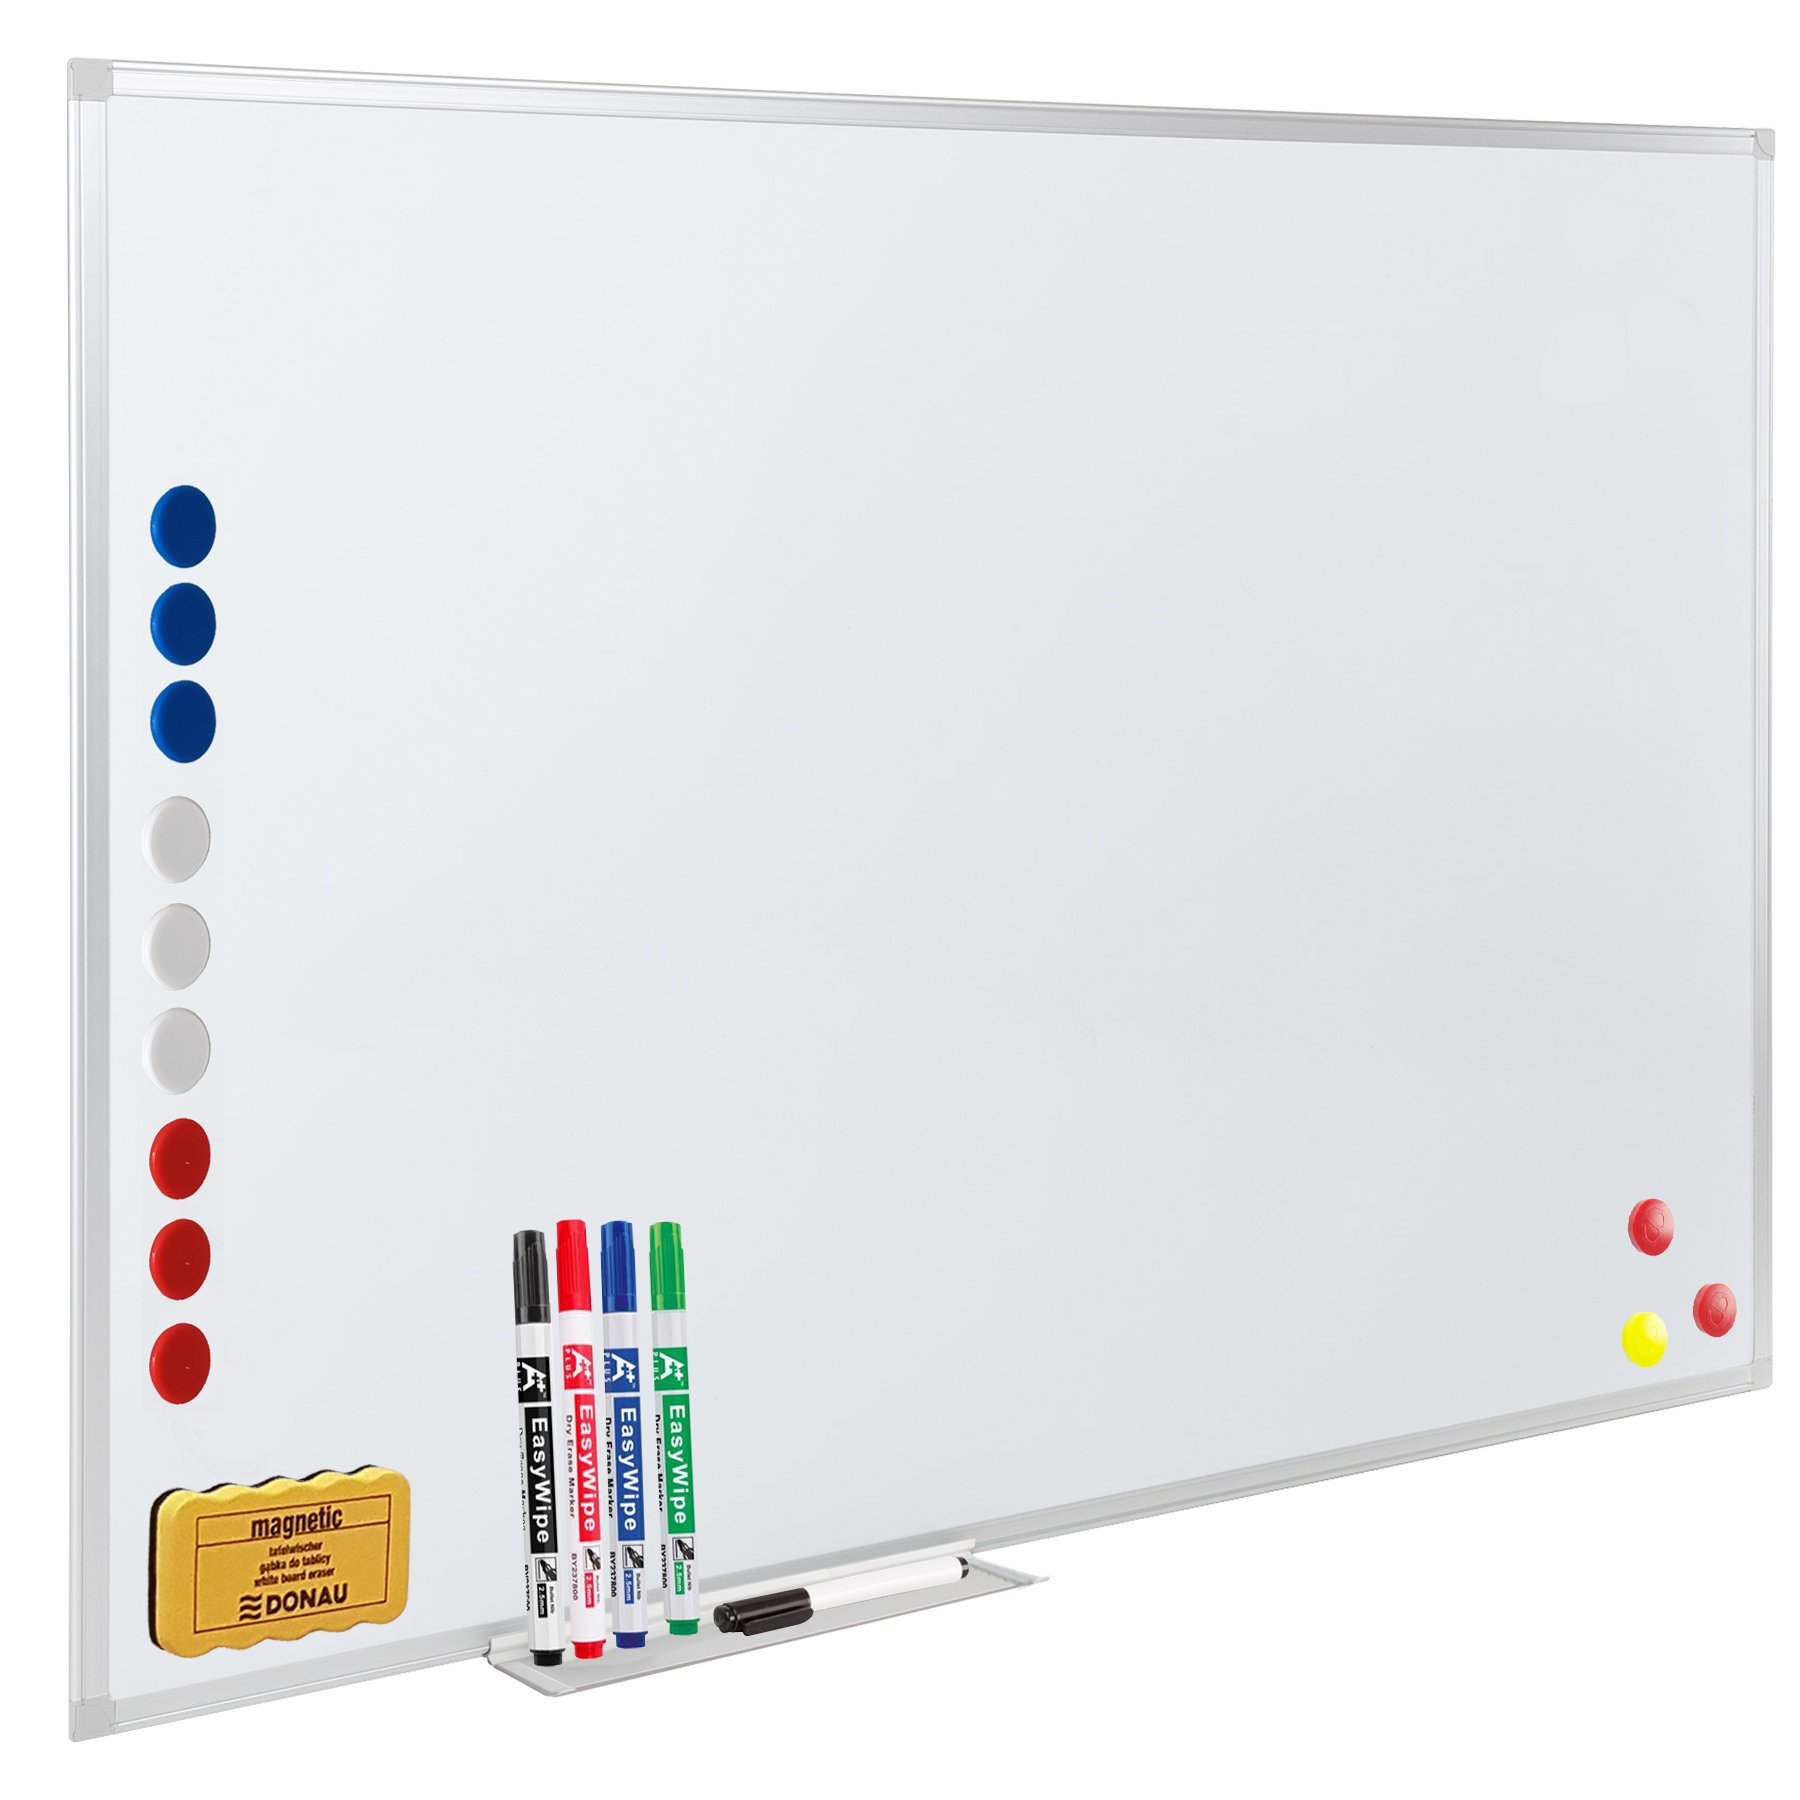 Item WHITE magnetic BOARD with backlight 120x90 cm